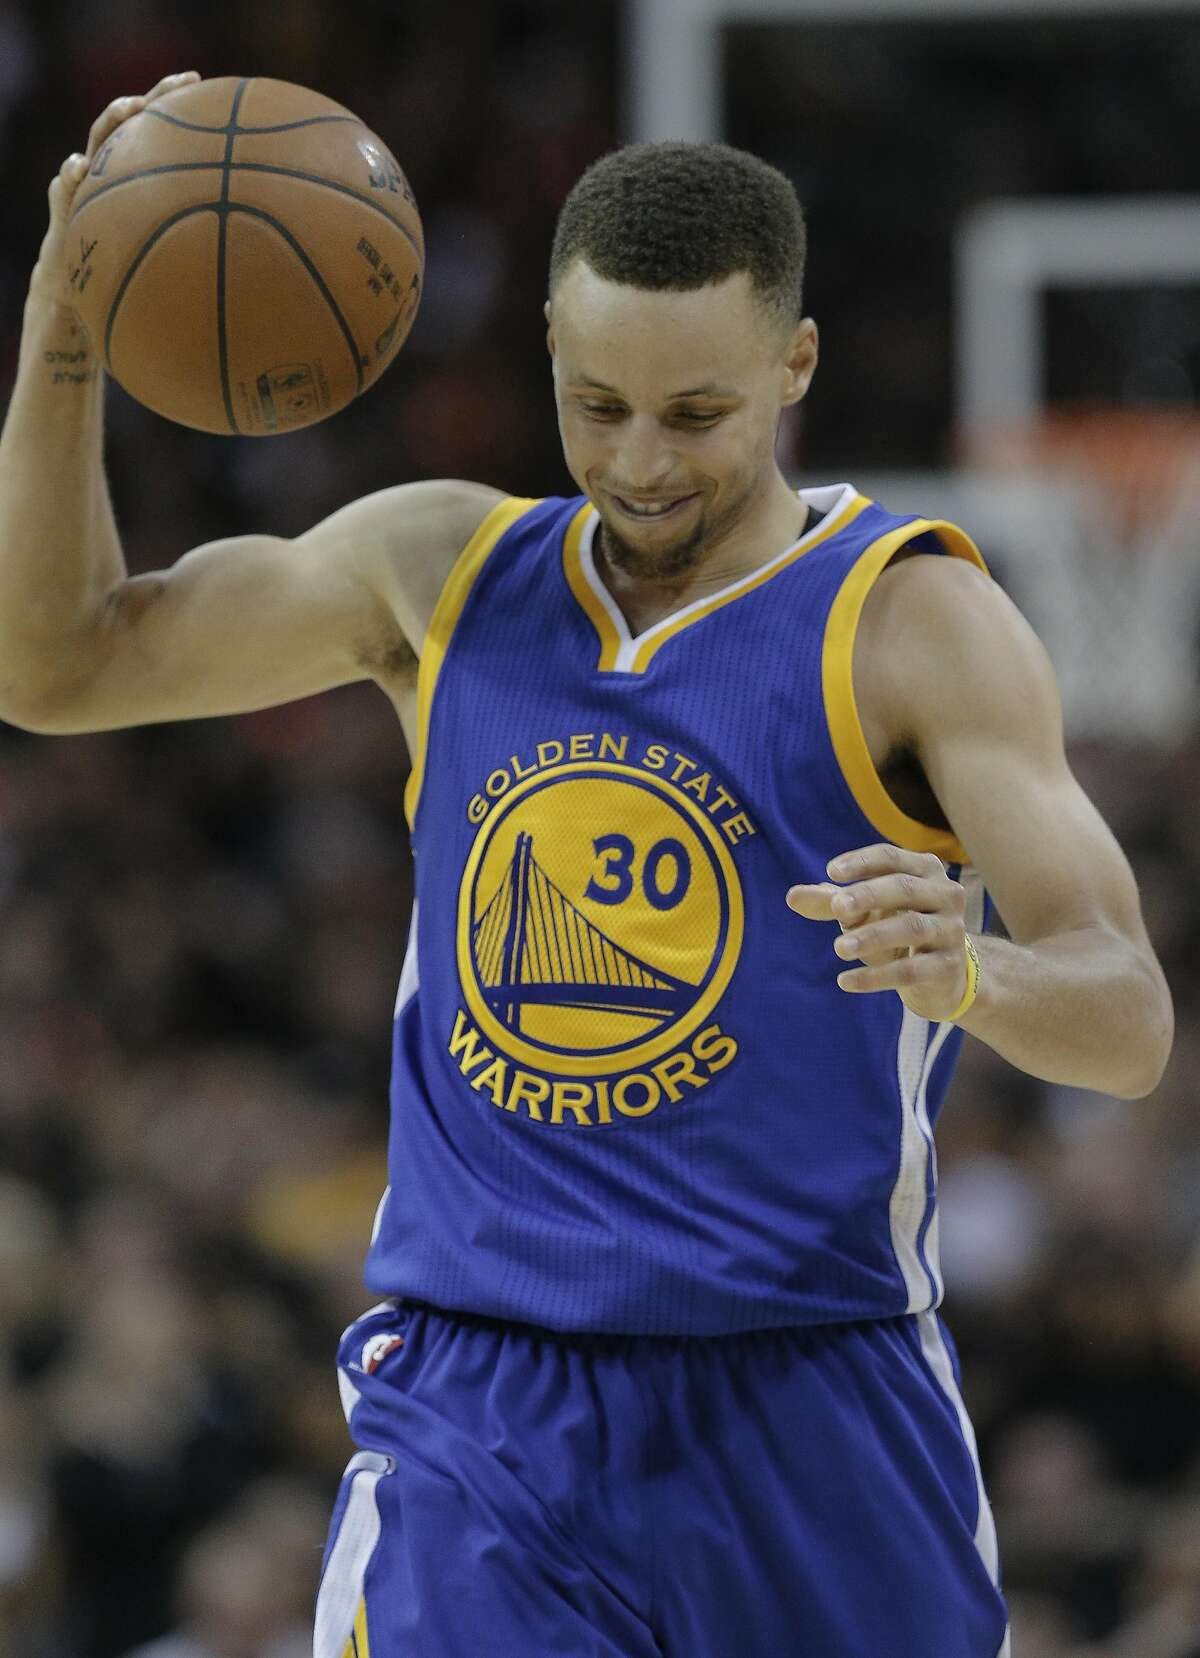 Golden State Warriors' Stephen Curry reacts after being called for his fifth foul during Game 6 of the NBA Finals at The Quicken Loans Arena on Thursday, June 16, 2016 in Cleveland, Ohio.